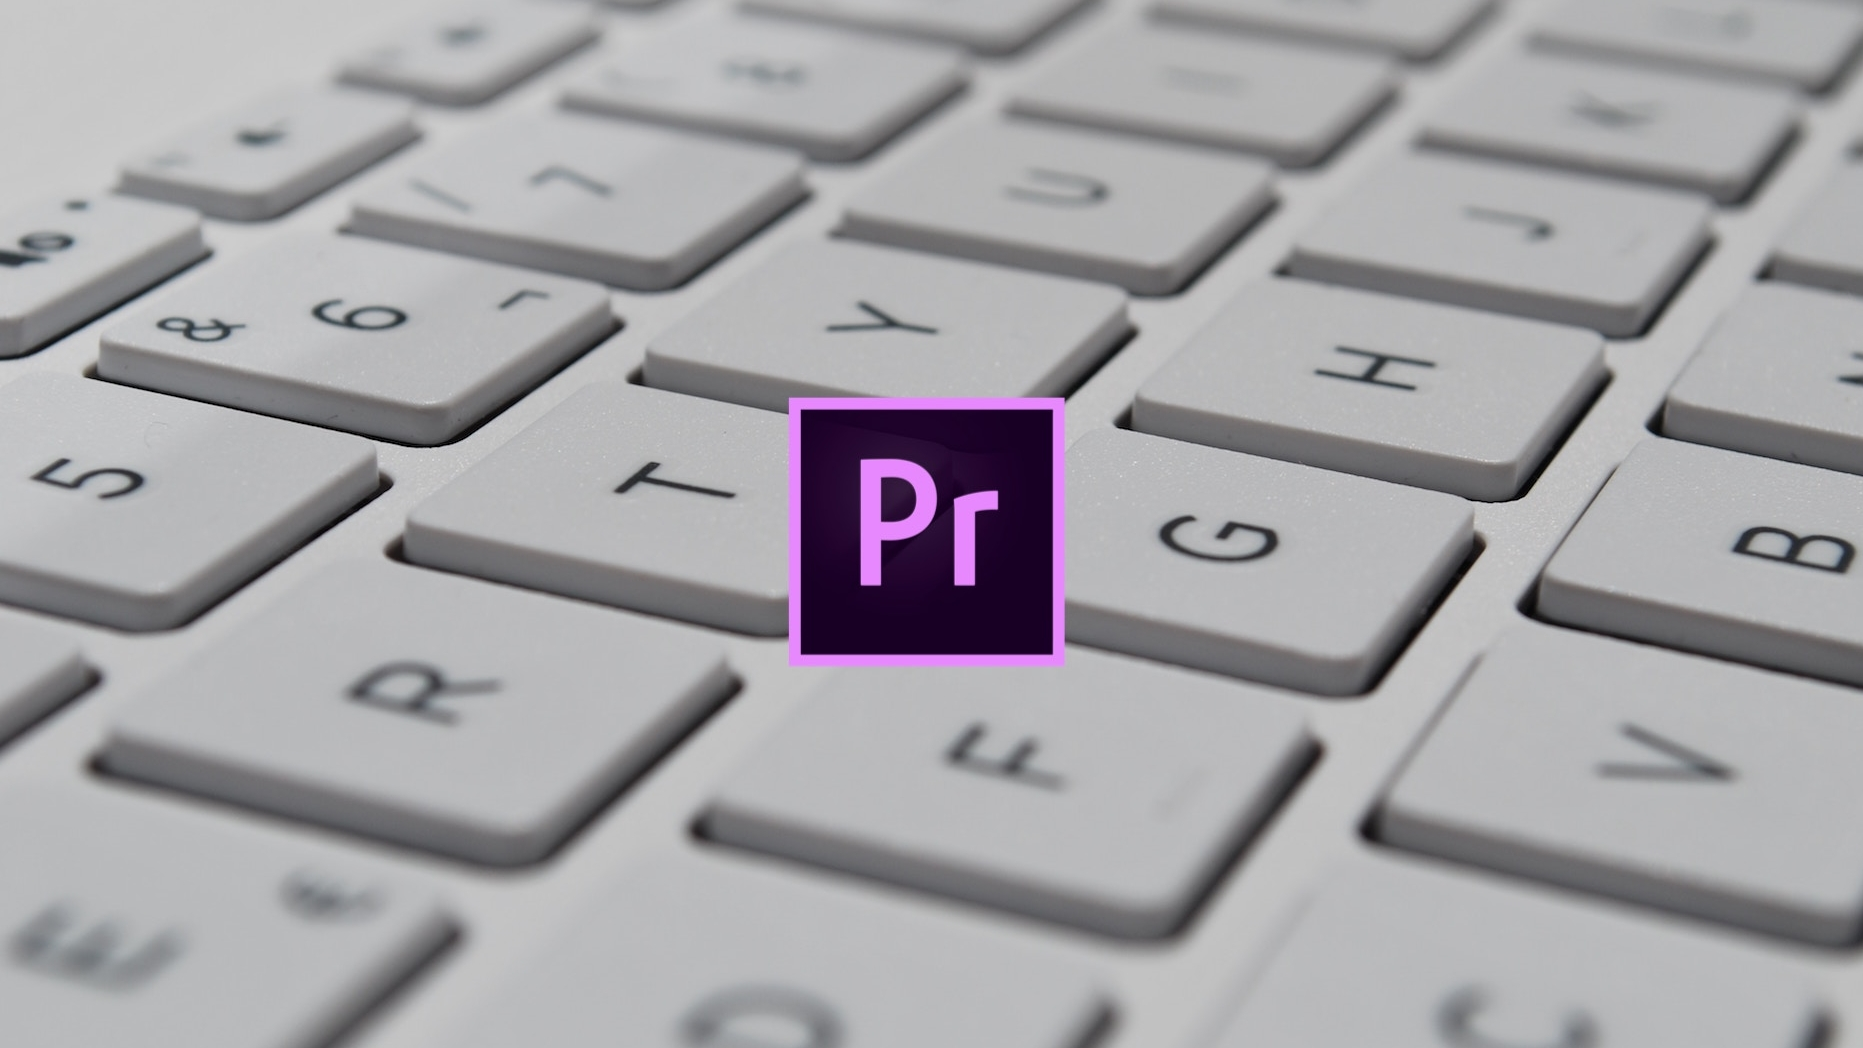 3-track-height-keyboard-shortcuts-premiere-pro.jpg